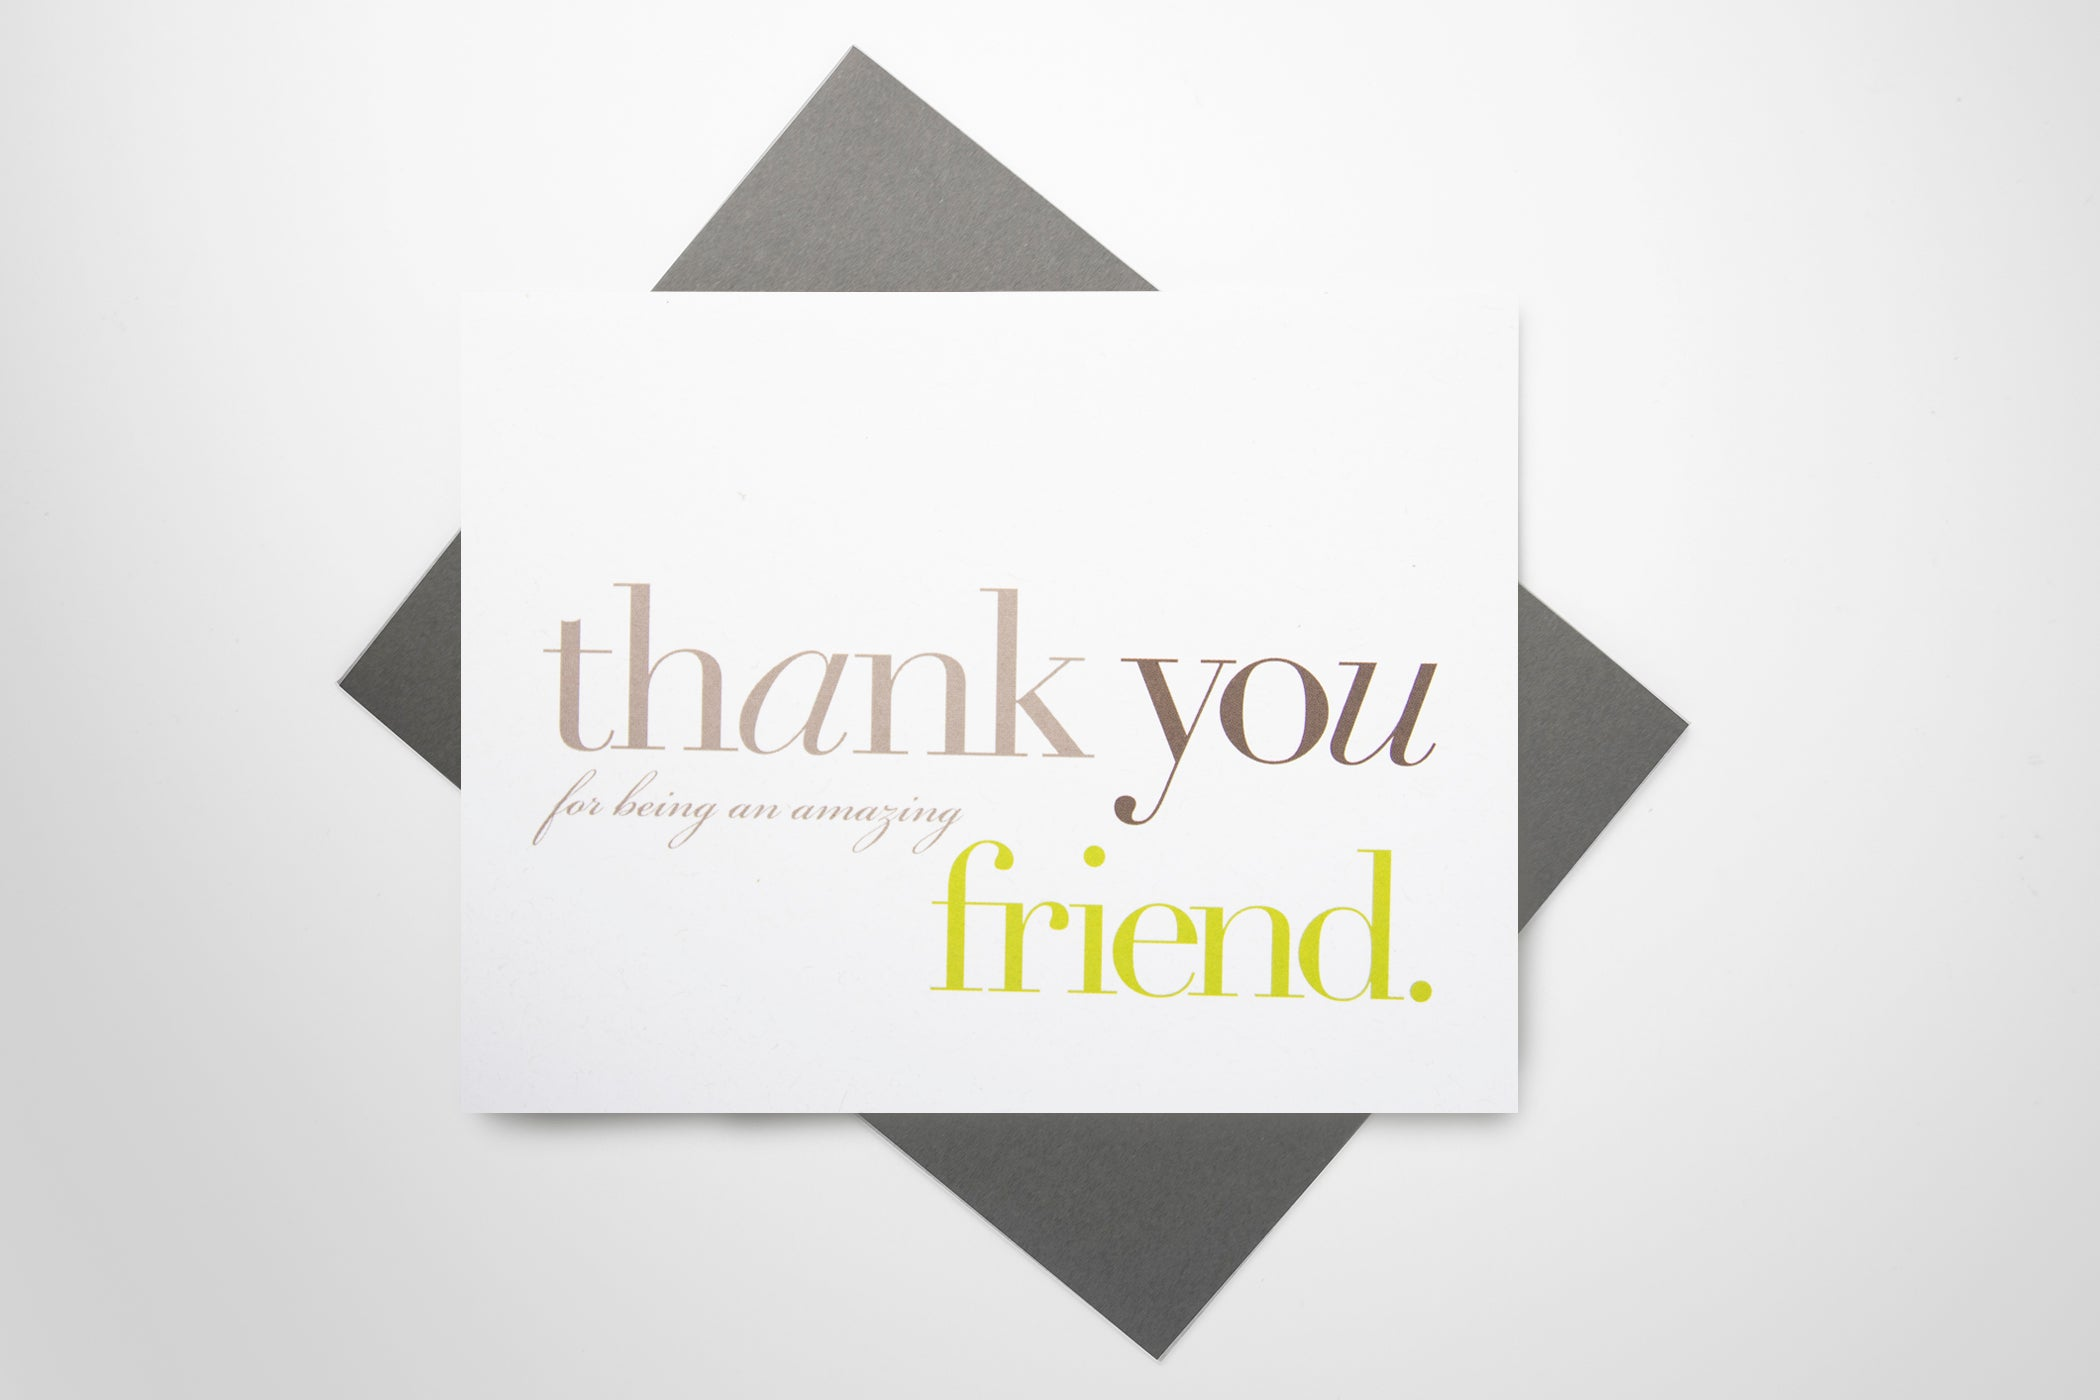 Thank You (for being an amazing friend) Card